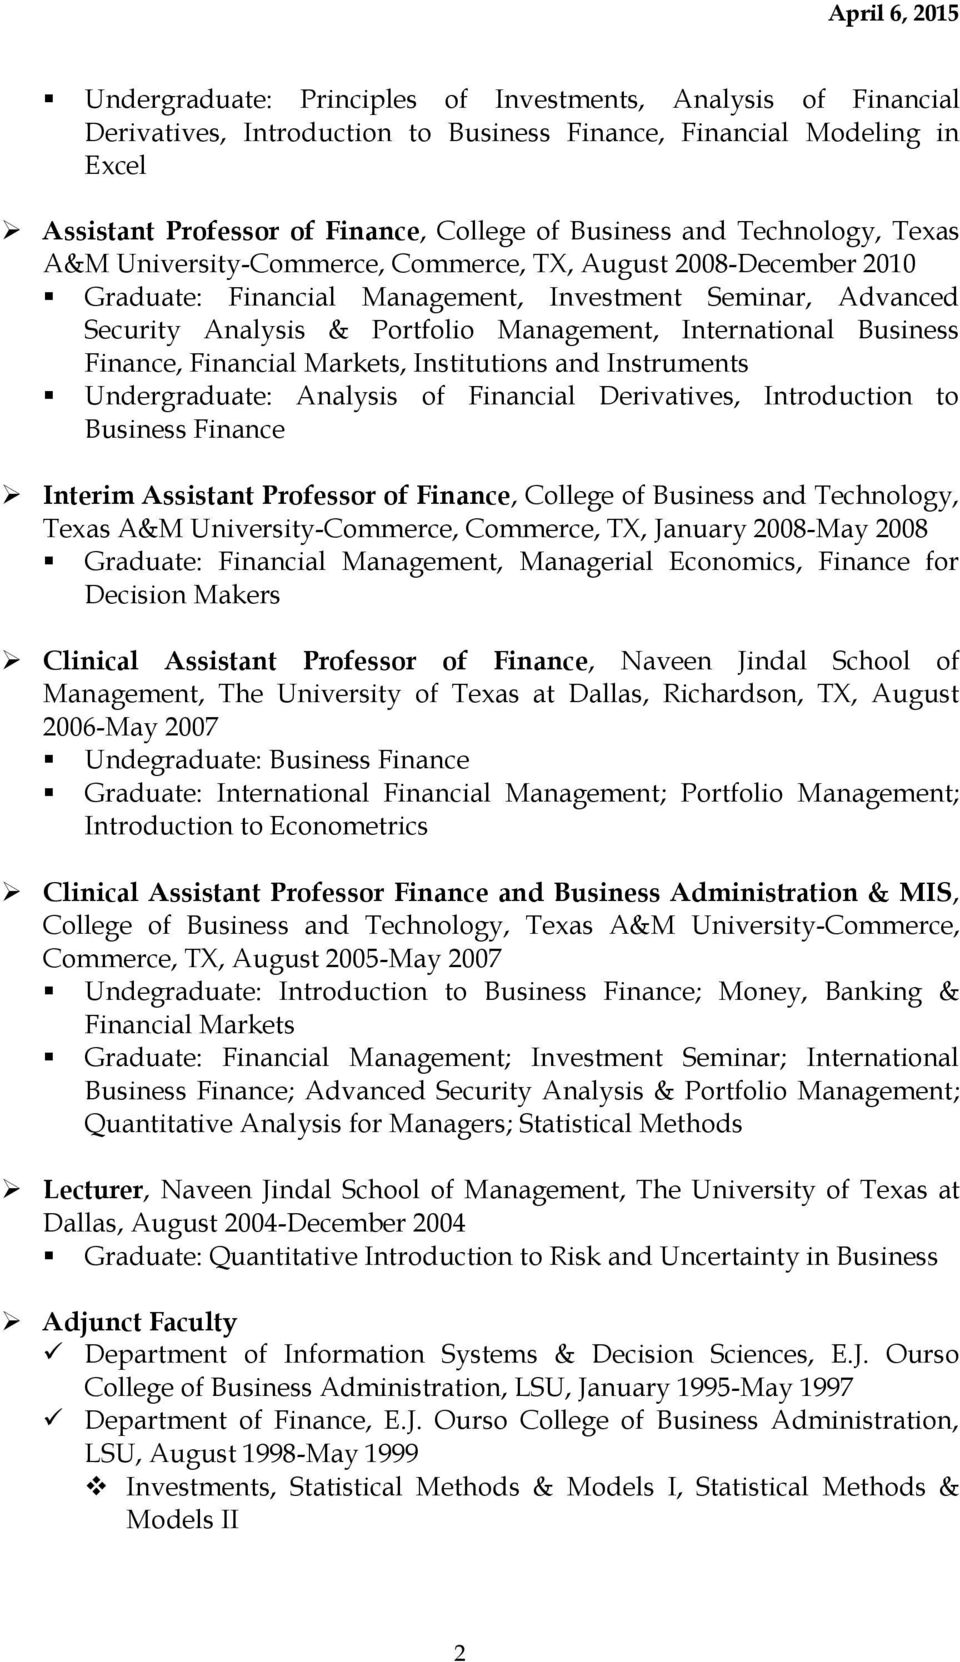 Business Finance, Financial Markets, Institutions and Instruments Undergraduate: Analysis of Financial Derivatives, Introduction to Business Finance Interim Assistant Professor of Finance, College of